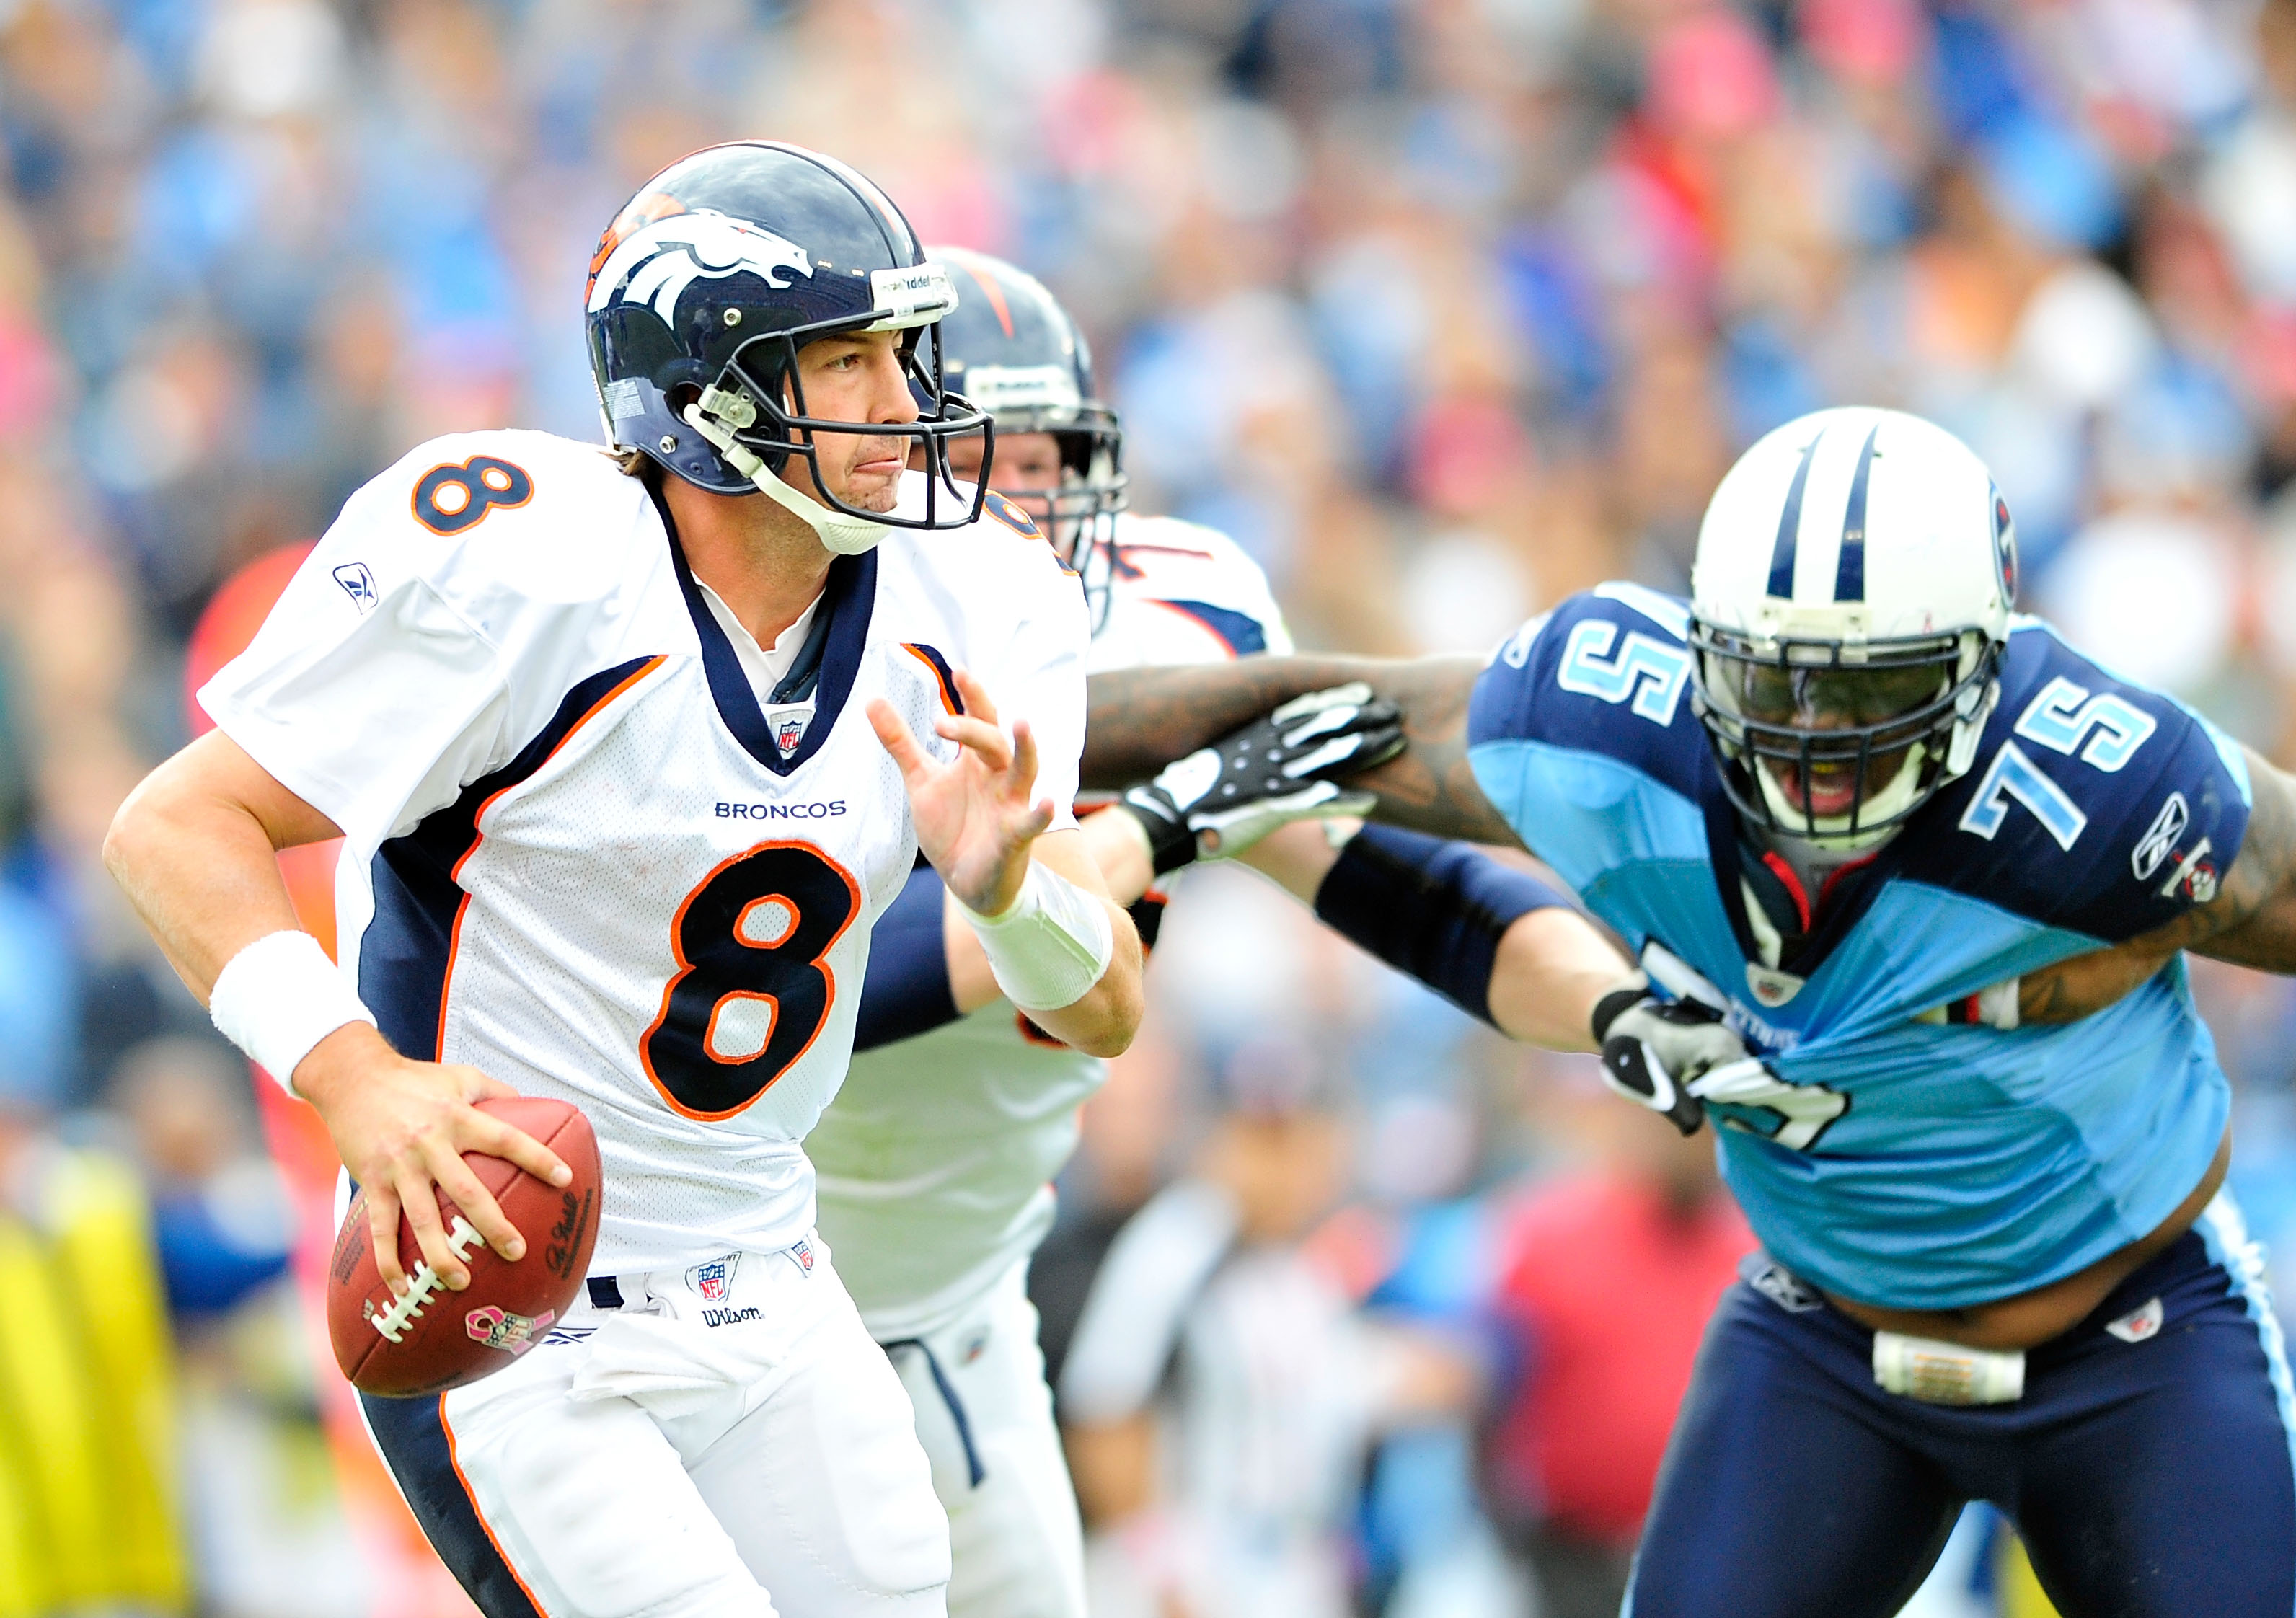 NASHVILLE, TN - OCTOBER 03:  Quarterback Kyle Orton #8 of the Denver Broncos looks to pass against the Tennessee Titans  at LP Field on October 3, 2010 in Nashville, Tennessee. Denver won 26-20.  (Photo by Grant Halverson/Getty Images)